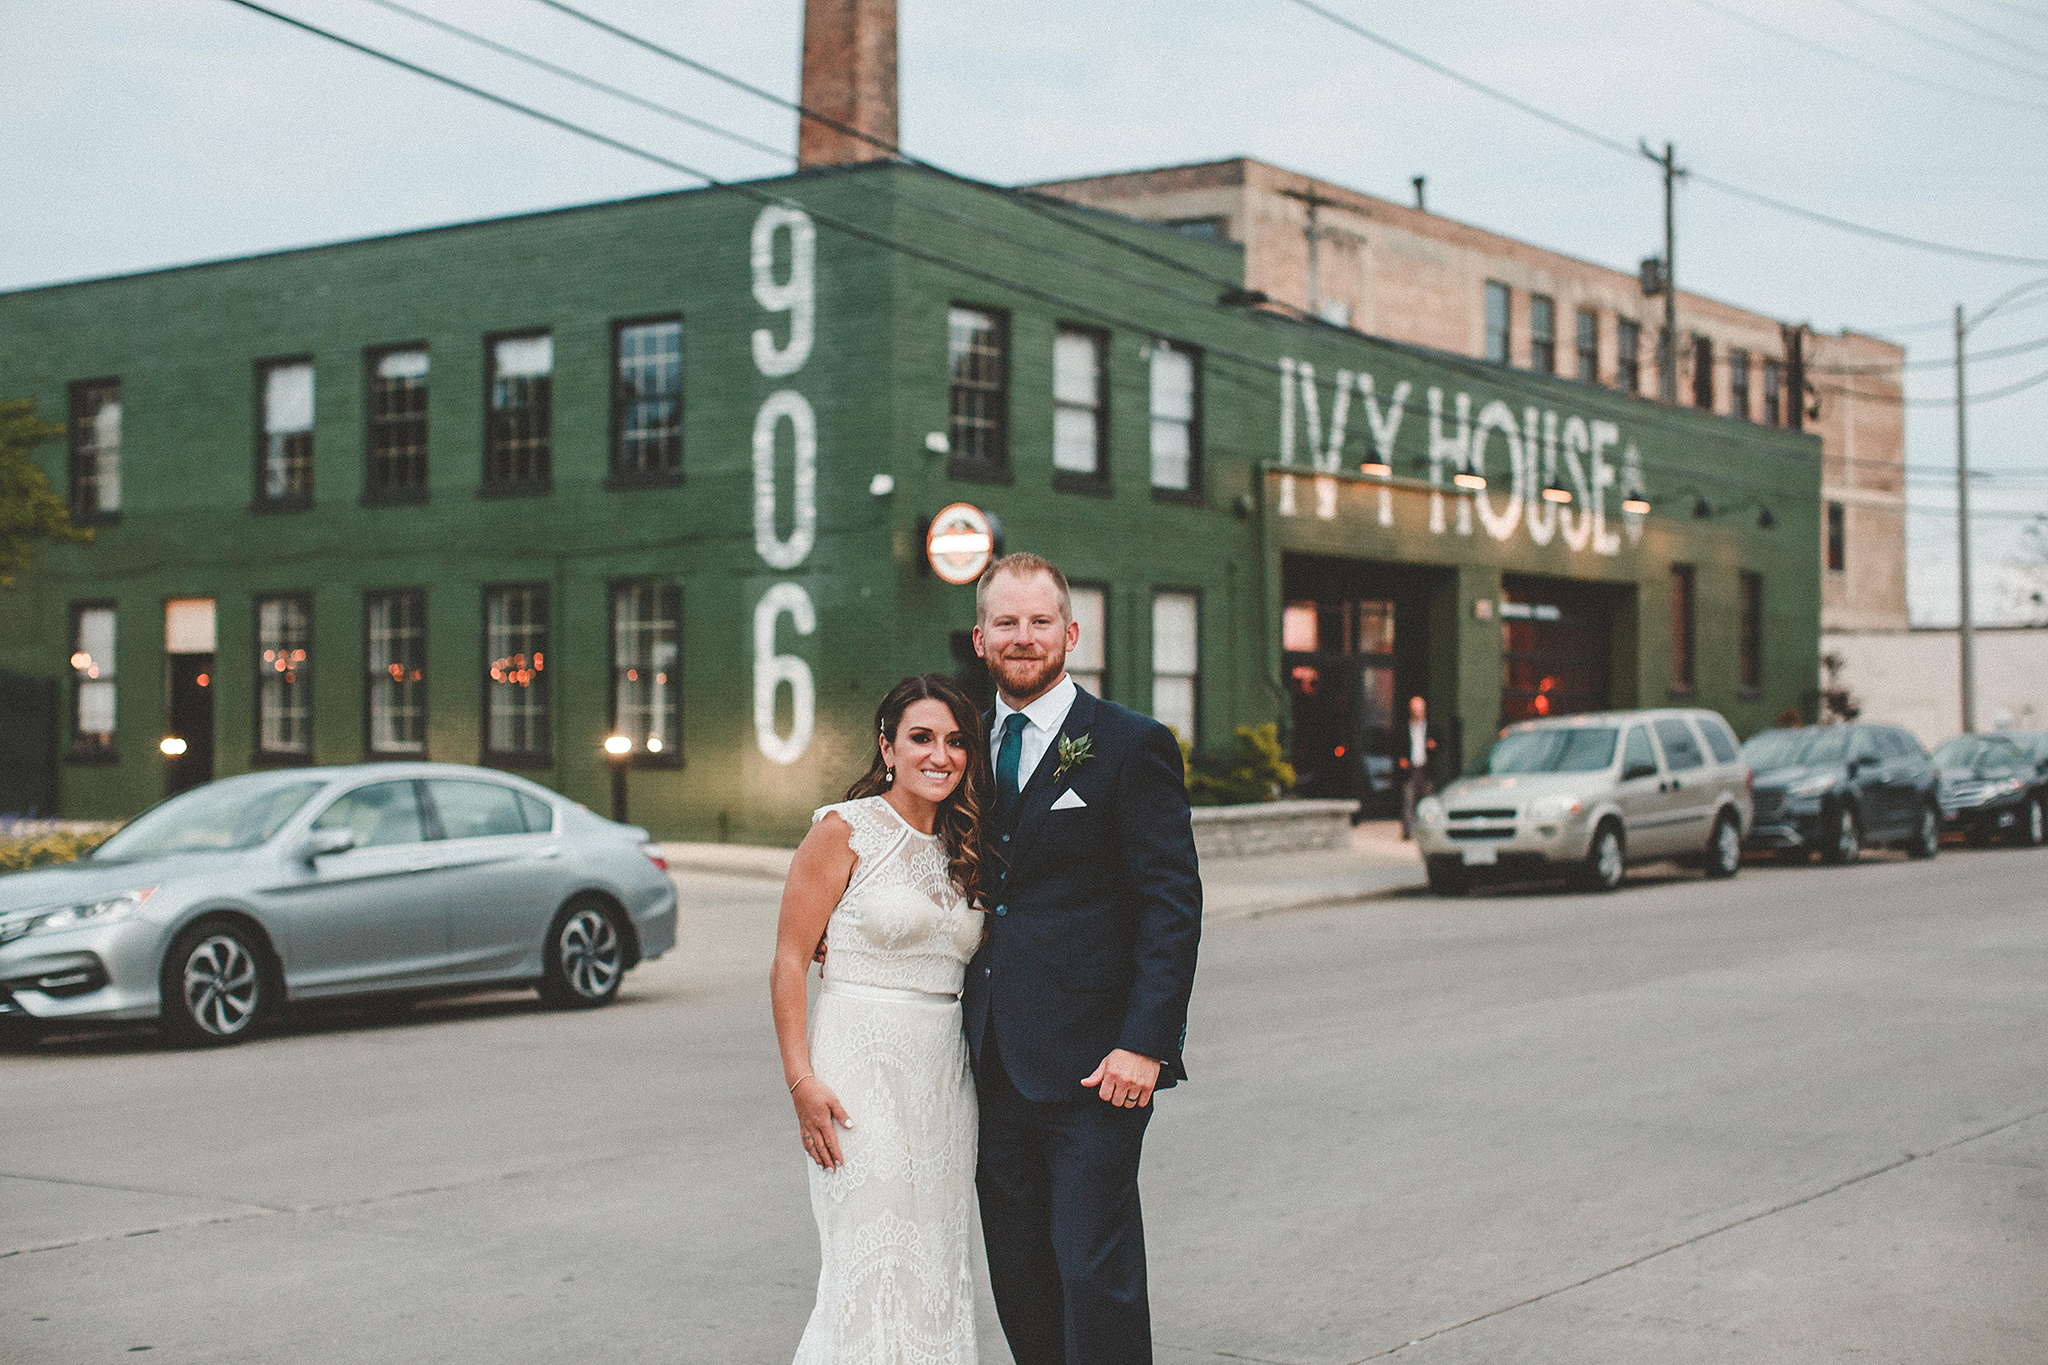 bride/groom sunset photos | the ivy house milwaukee wedding photographer | chrissy deming